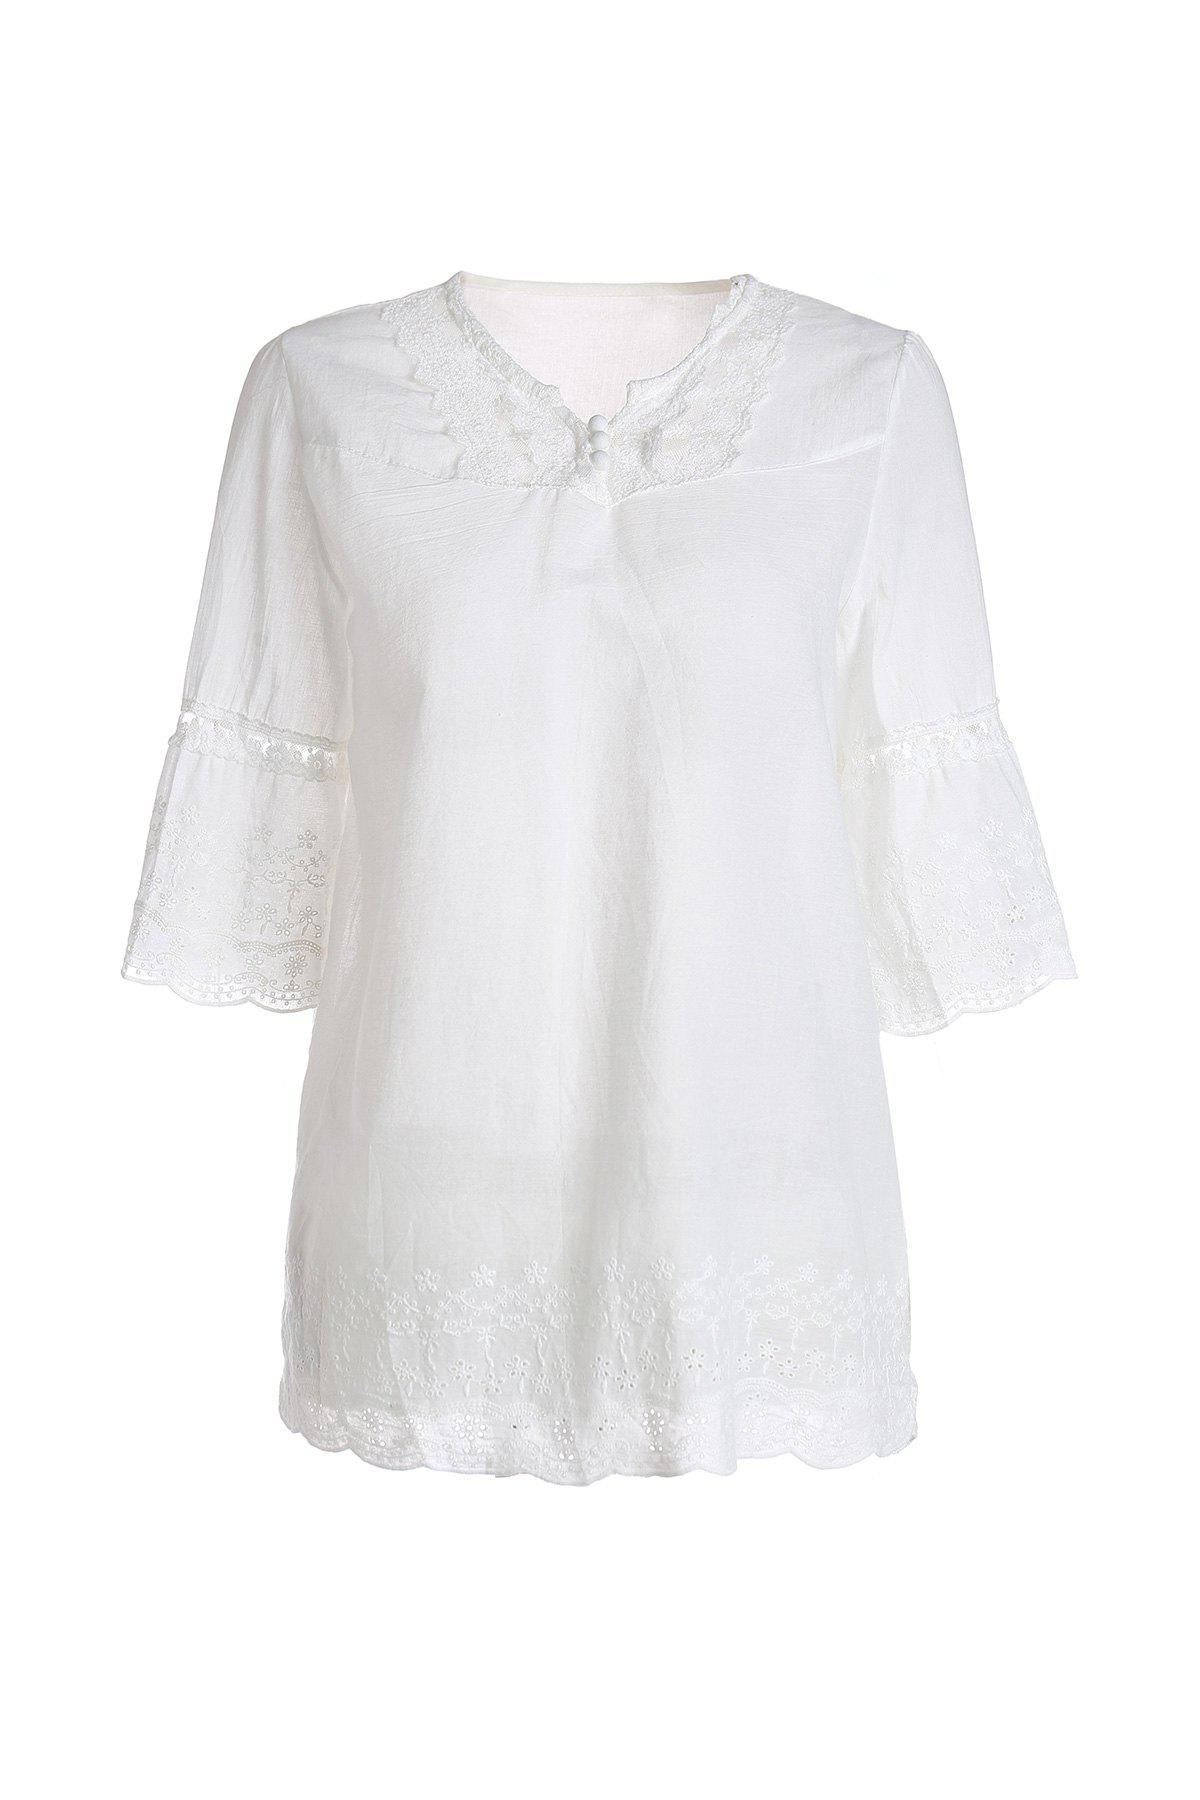 Refreshing Style Polyester Short Sleeves V-Neck Lace Splicing Women's Blouse